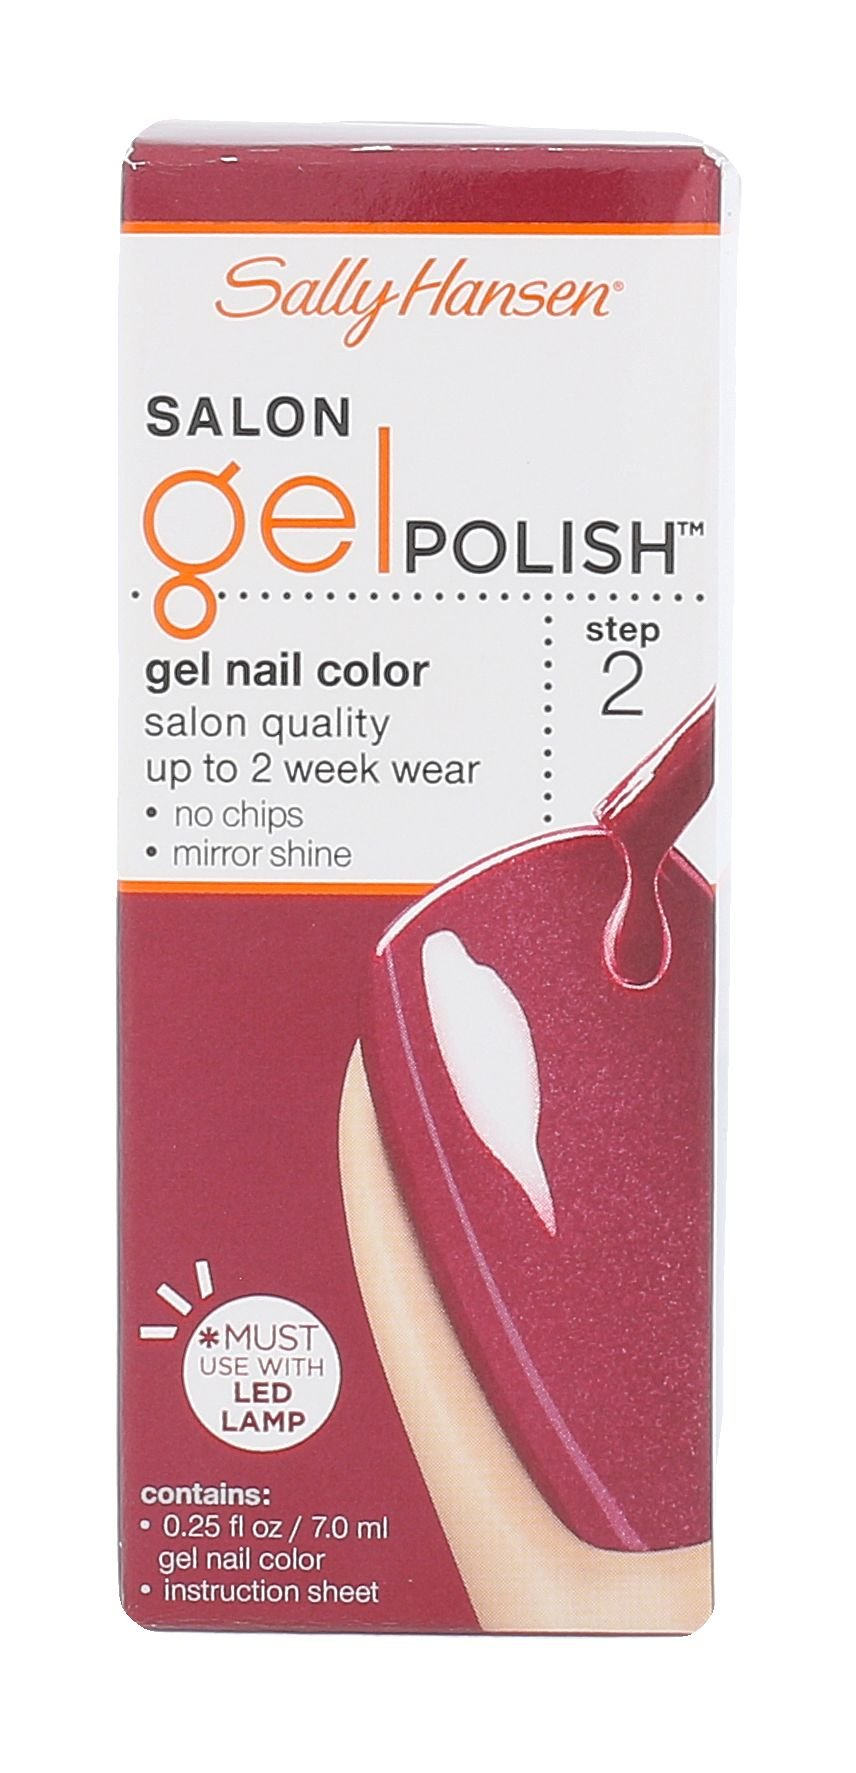 Sally Hansen Salon Gel Polish Cosmetic 7ml 230 Wine Not Step 2